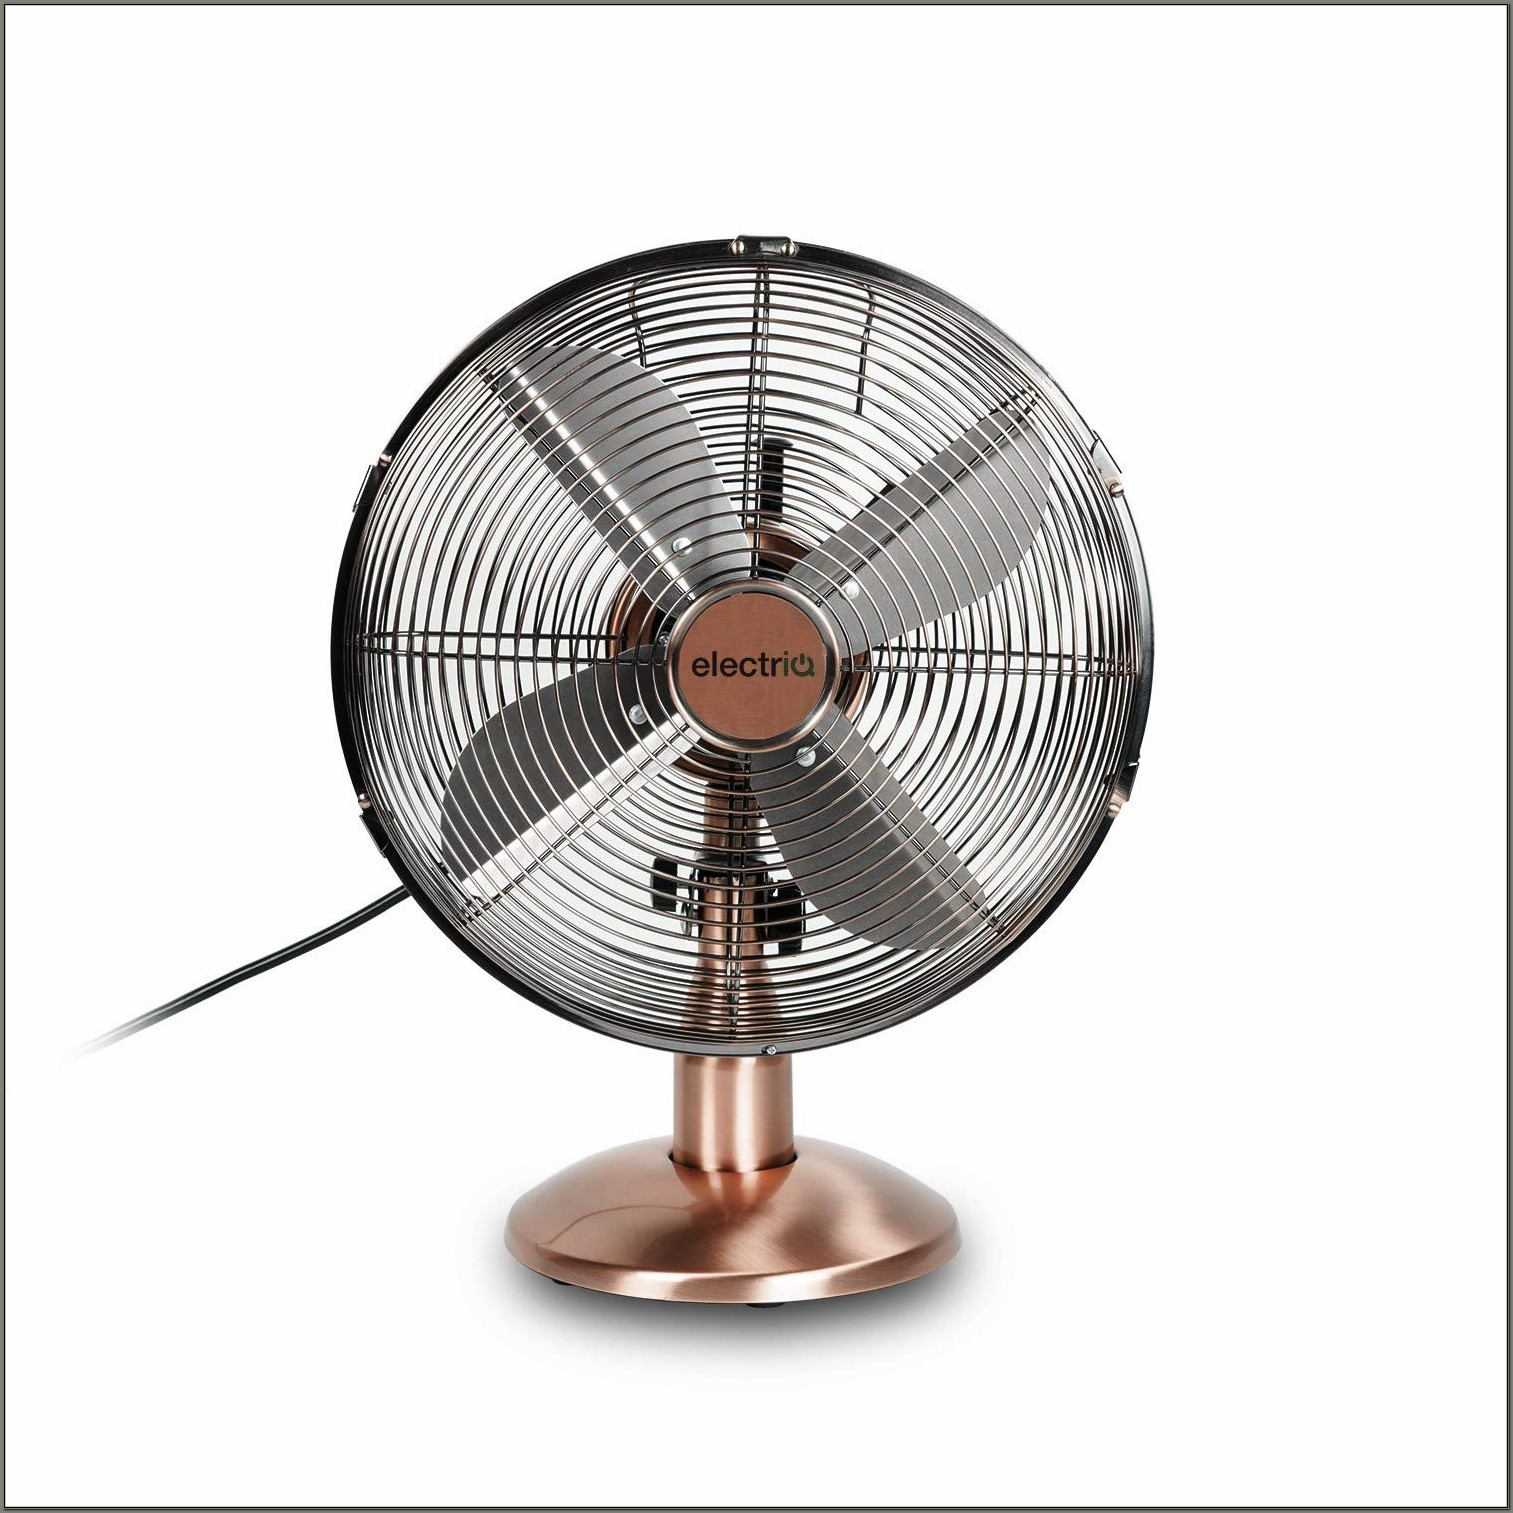 12 Inch Desk Fan Amazon